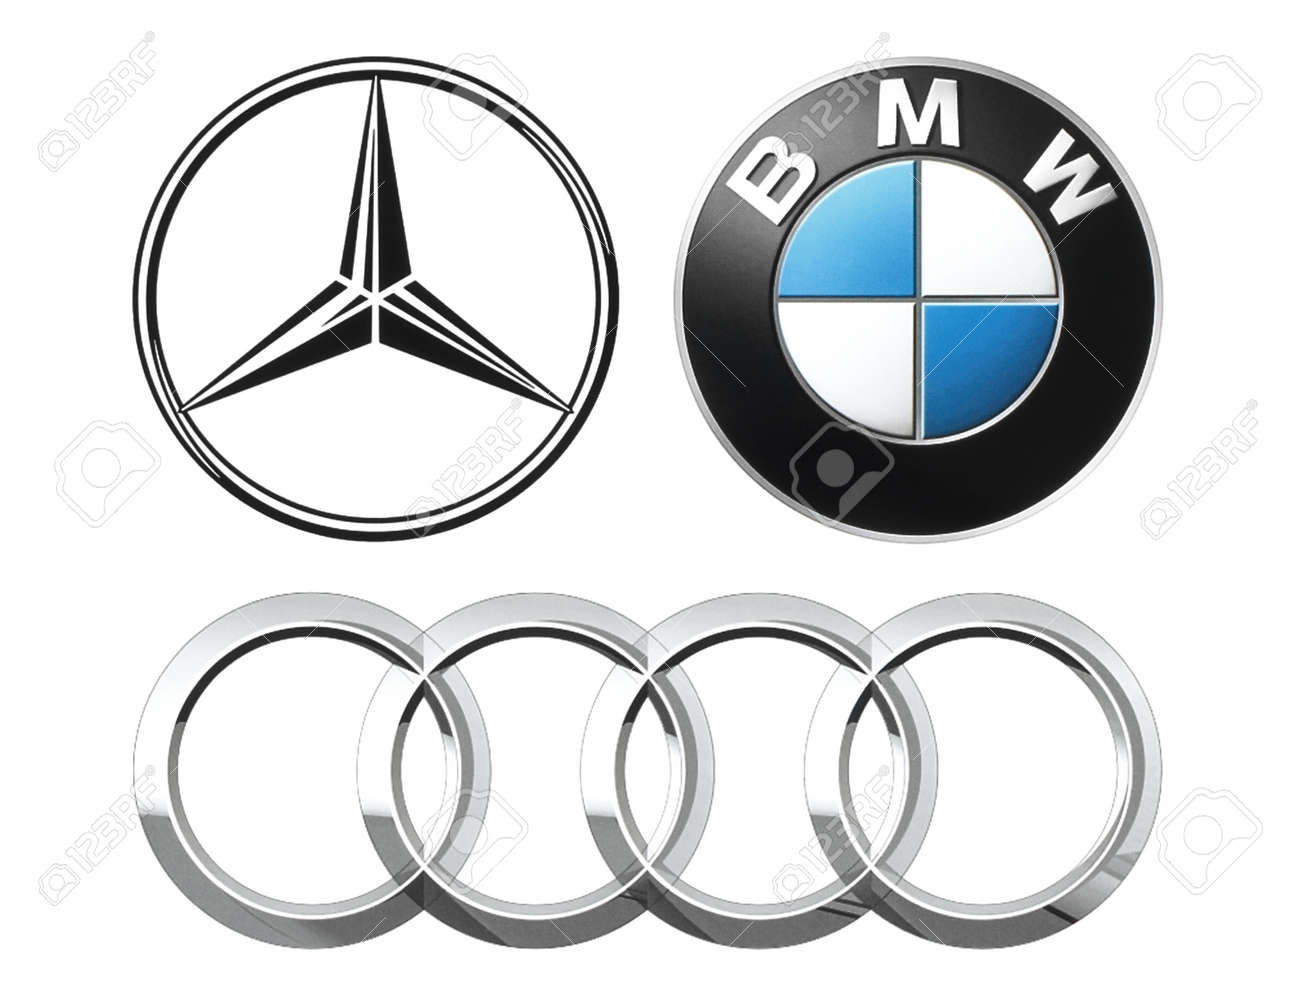 Kiev, Ukraine - September 12, 2016: Collection of popular German car logos printed on white paper: Mercedes, BMW and Audi - 63408128